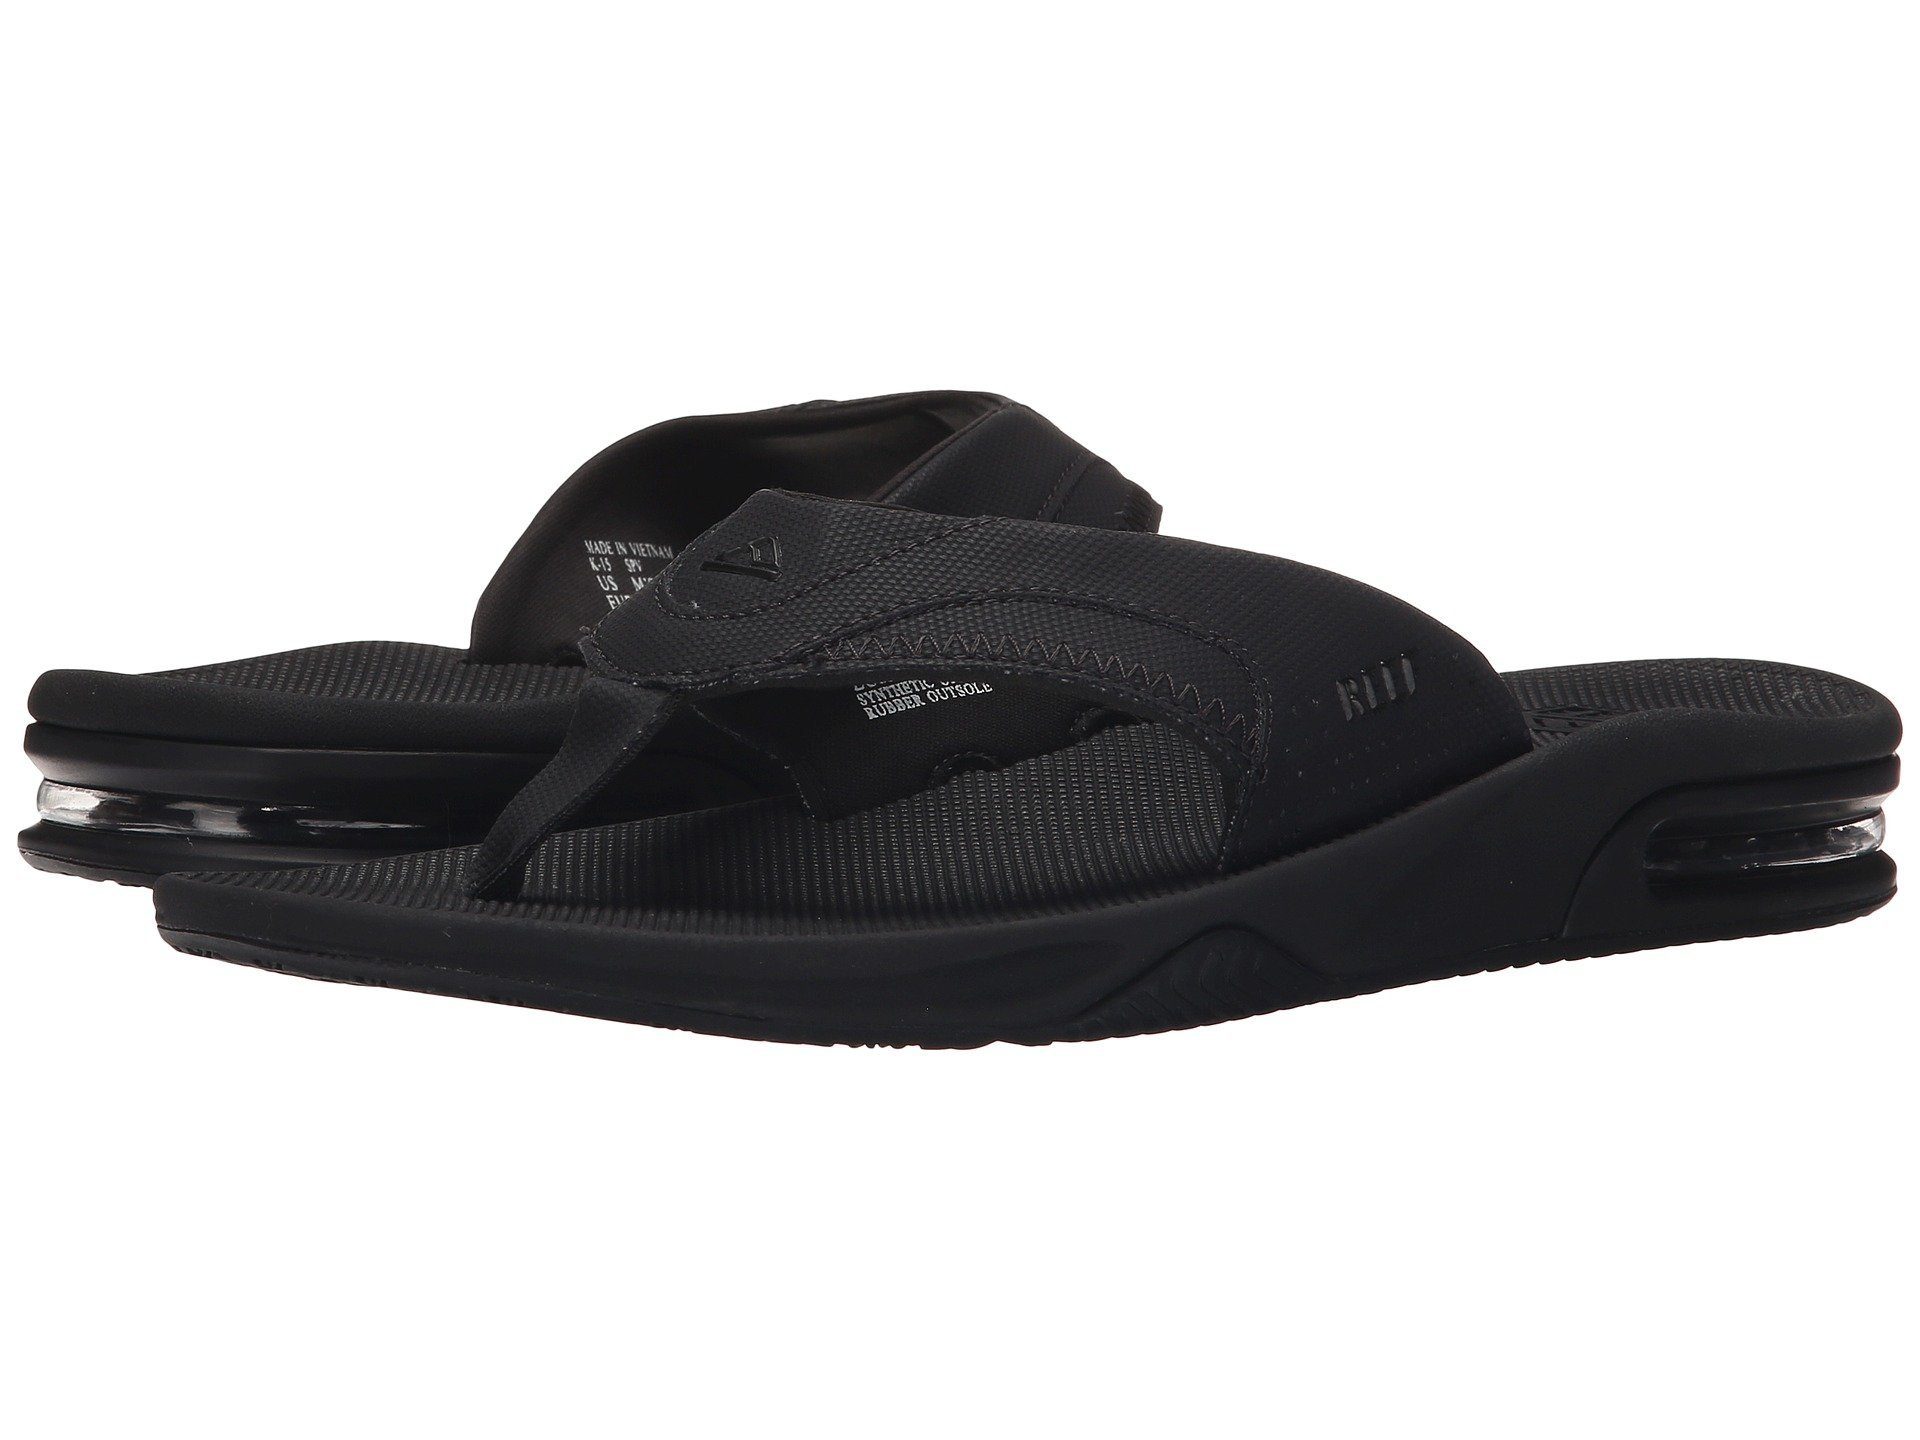 Reef Men's Fanning Sandal Black Size 7